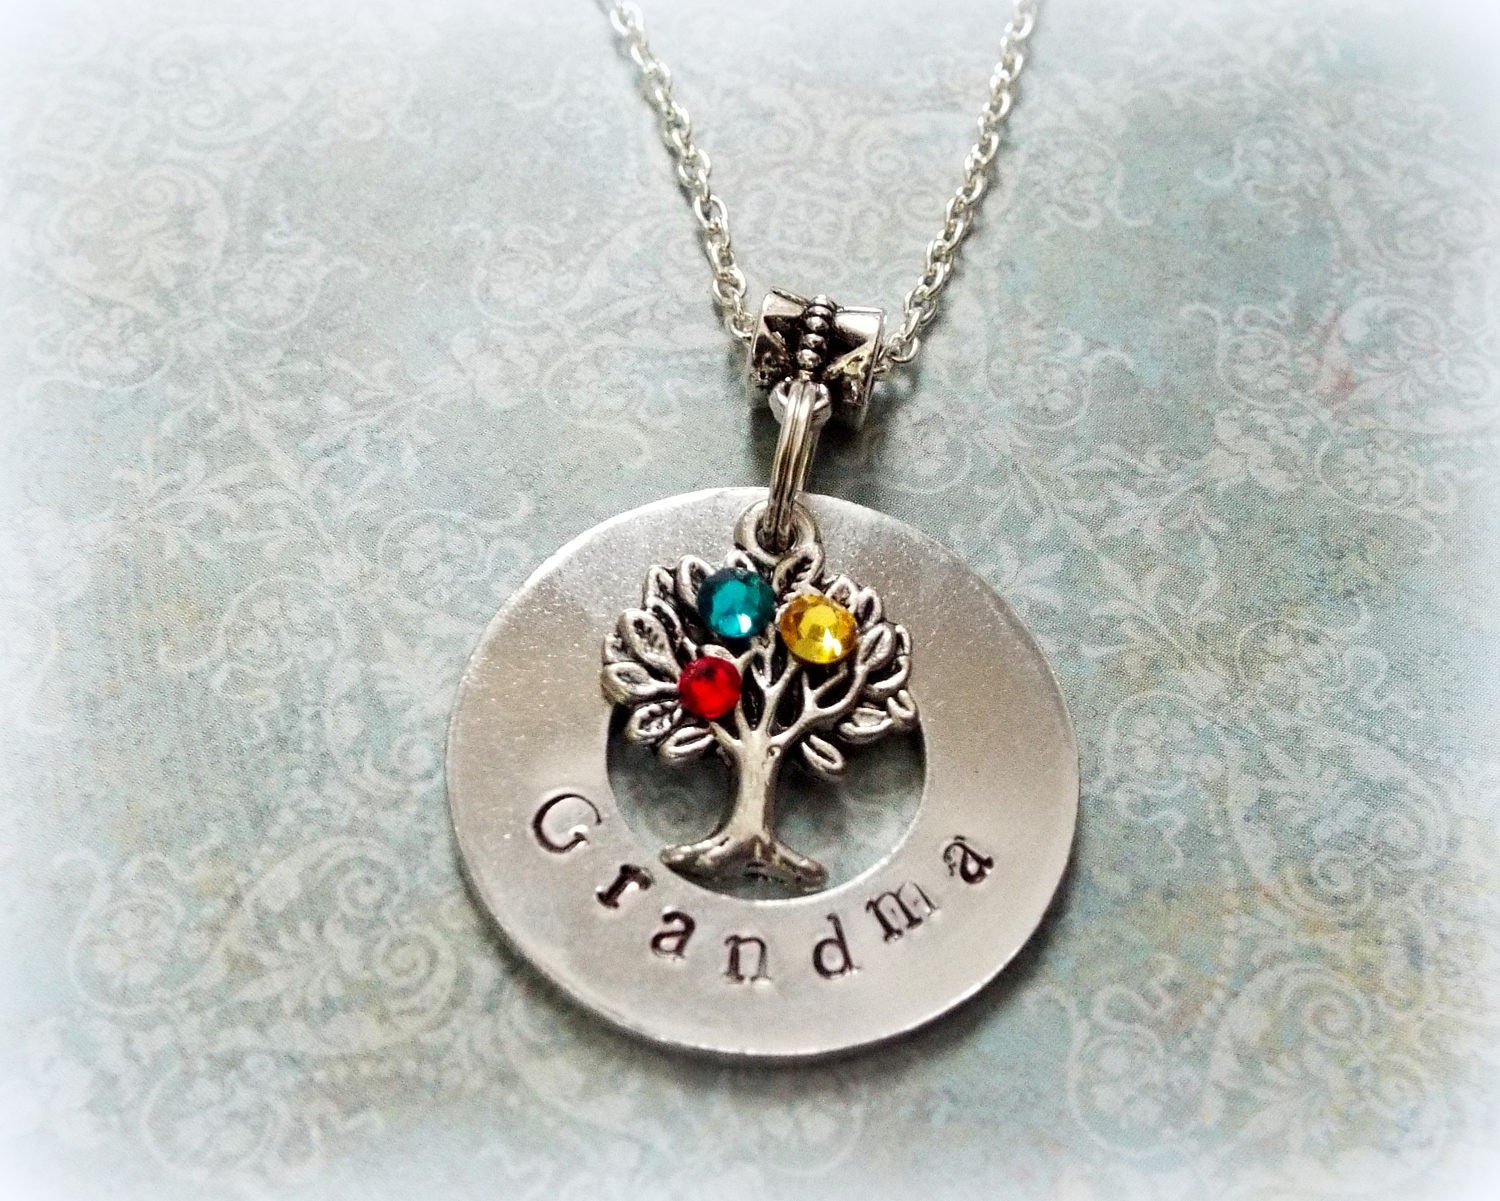 Grandmother Wedding Gift: Grandmother Necklace Gift, Personalized Grandmother